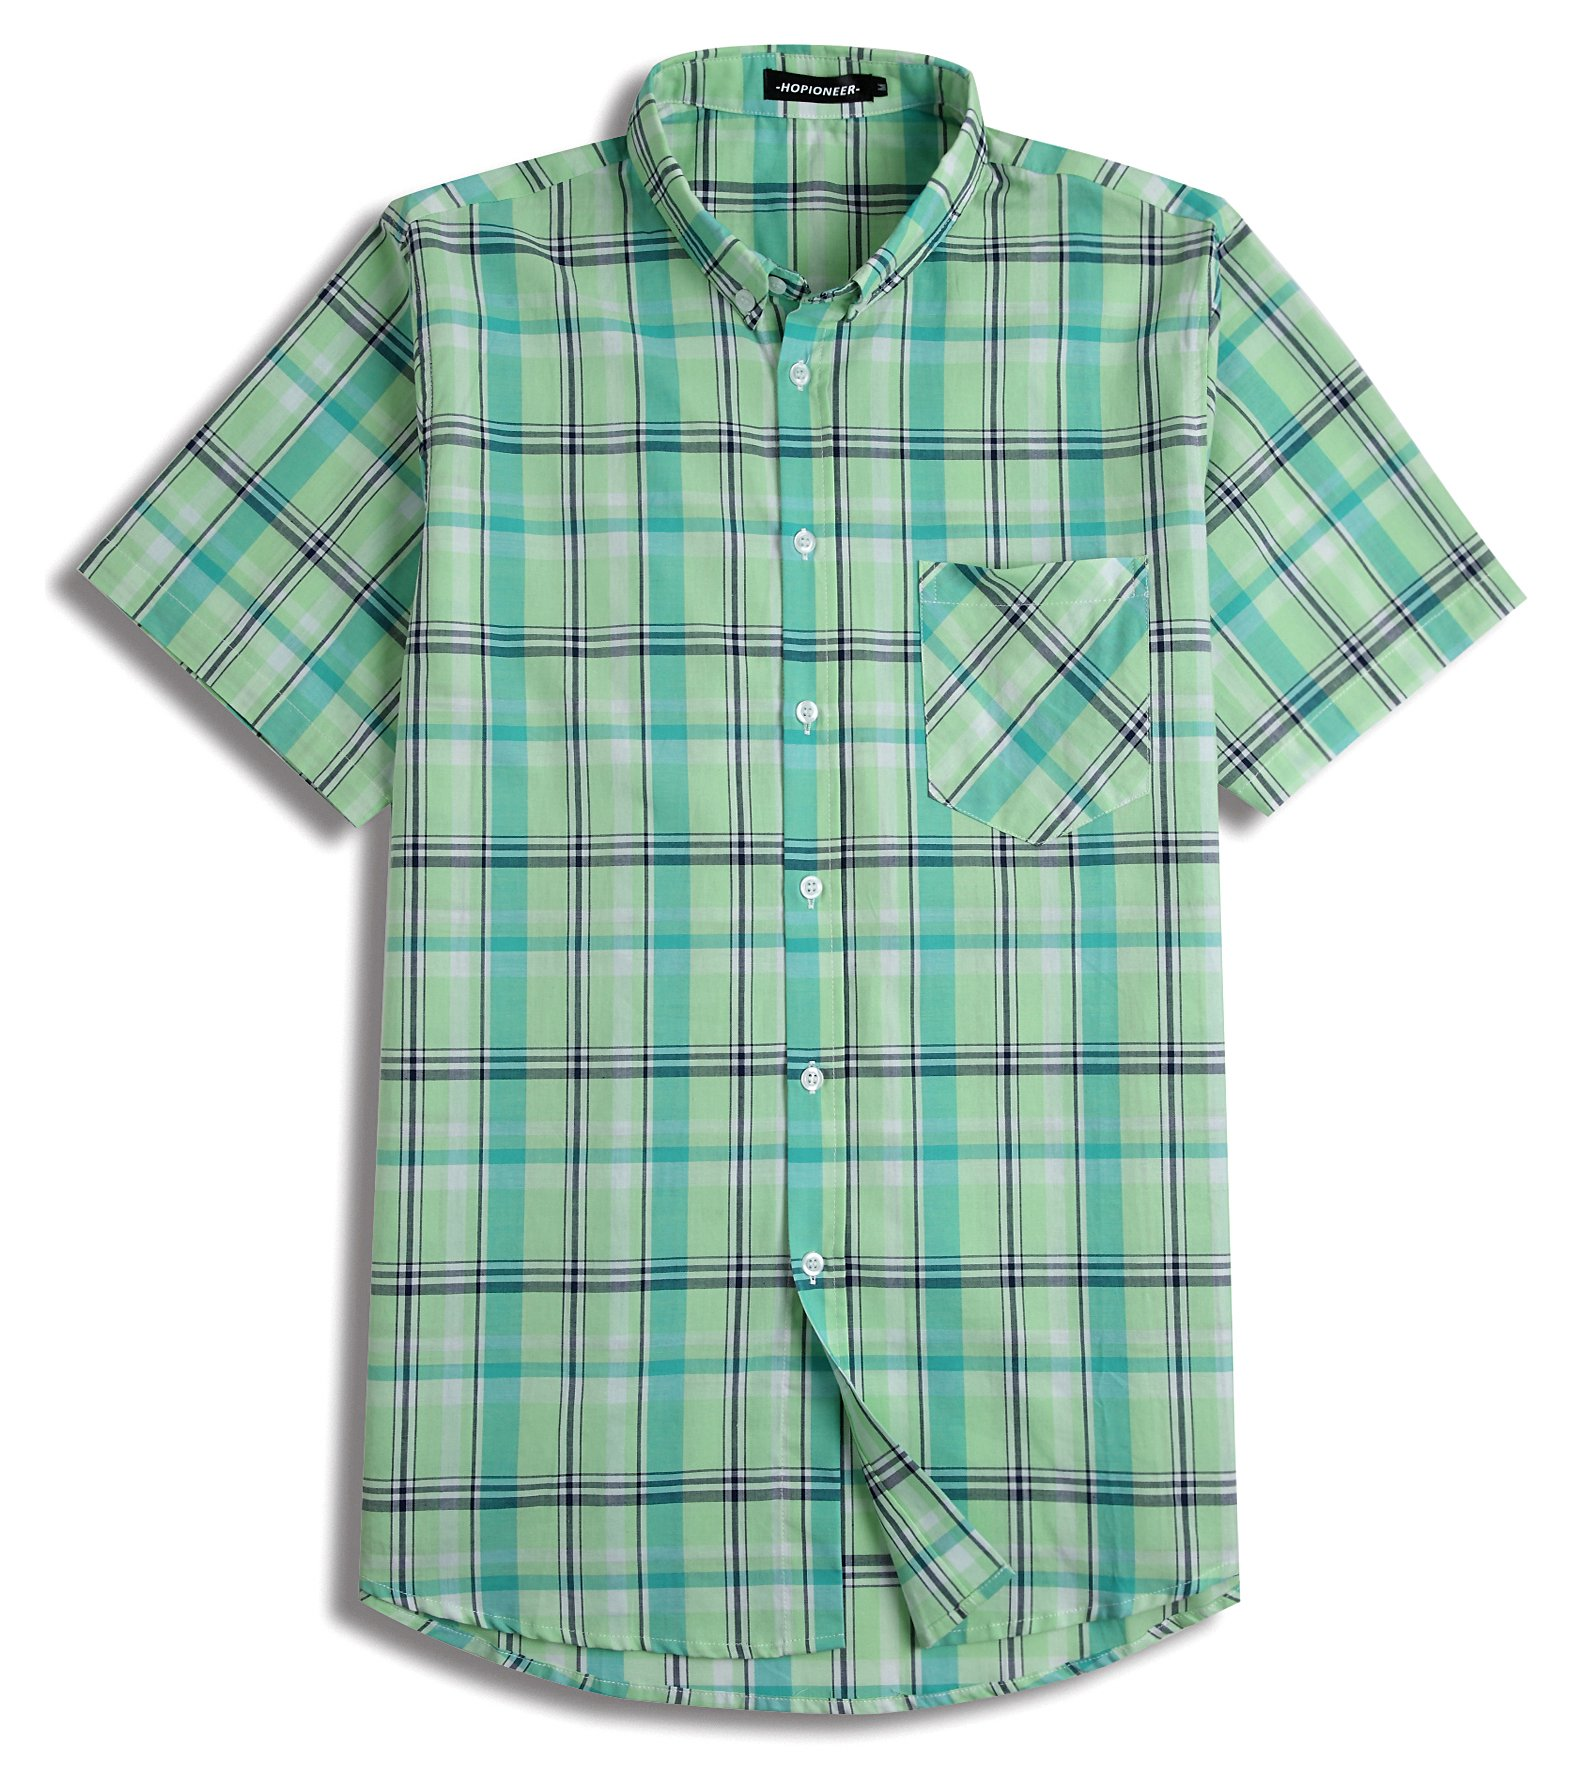 Hopioneer Men's Relaxed Fit Plaid Short Sleeve Button Down Shirt Cotton Button Up Casual Summer Woven Shirt (XX-Large, Green)